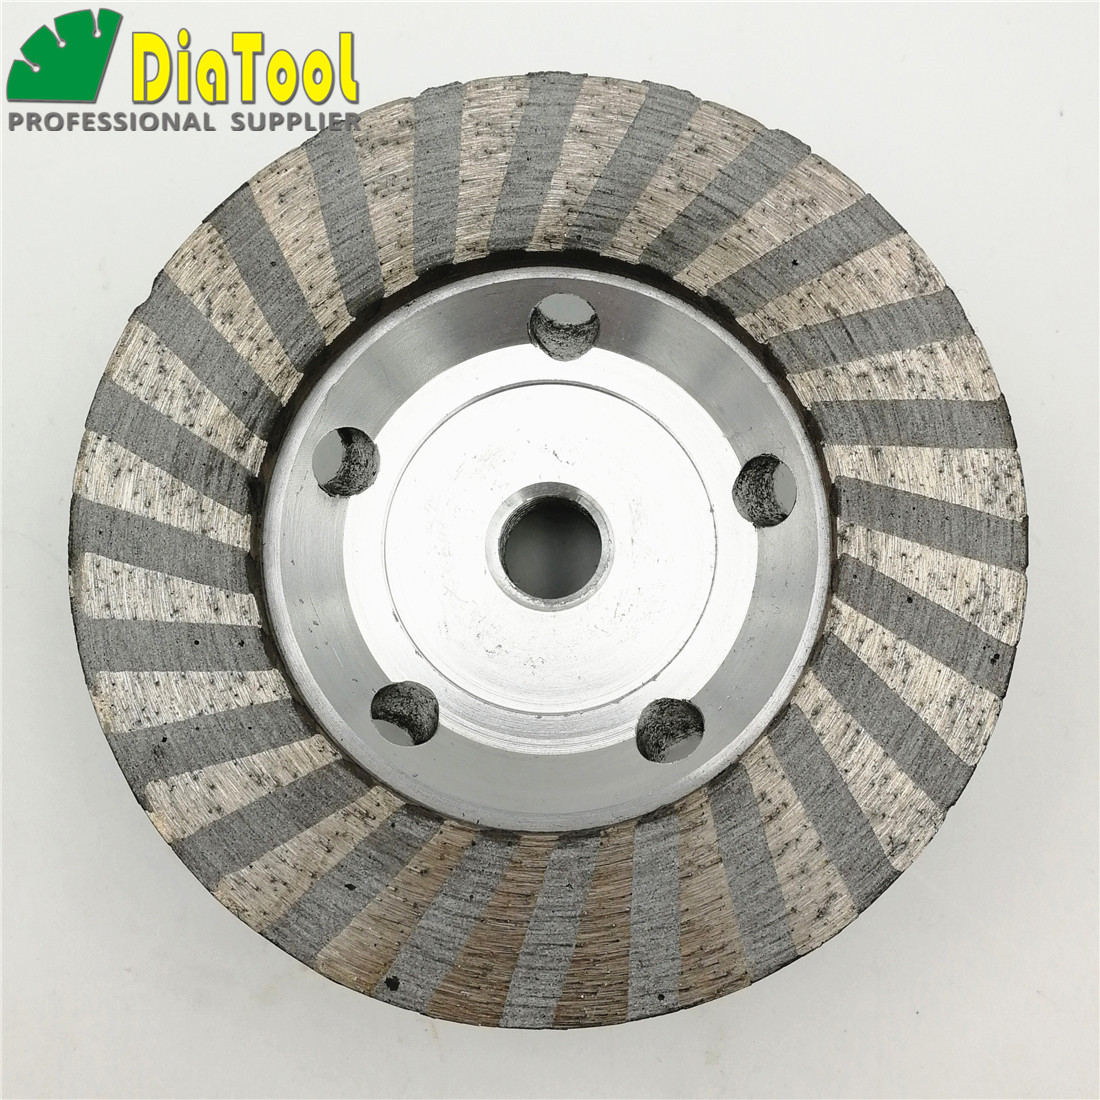 DIATOOL 1pc Diameter 4 inch M14 Thread Aluminum Based Diamond Grinding Cup Wheel Fine Grinding Lower Noise Diamond Discs 2pk diamond double row grinding cup wheel for granite and hard material diameter 4 5 115mm bore 22 23mm with 16mm washer